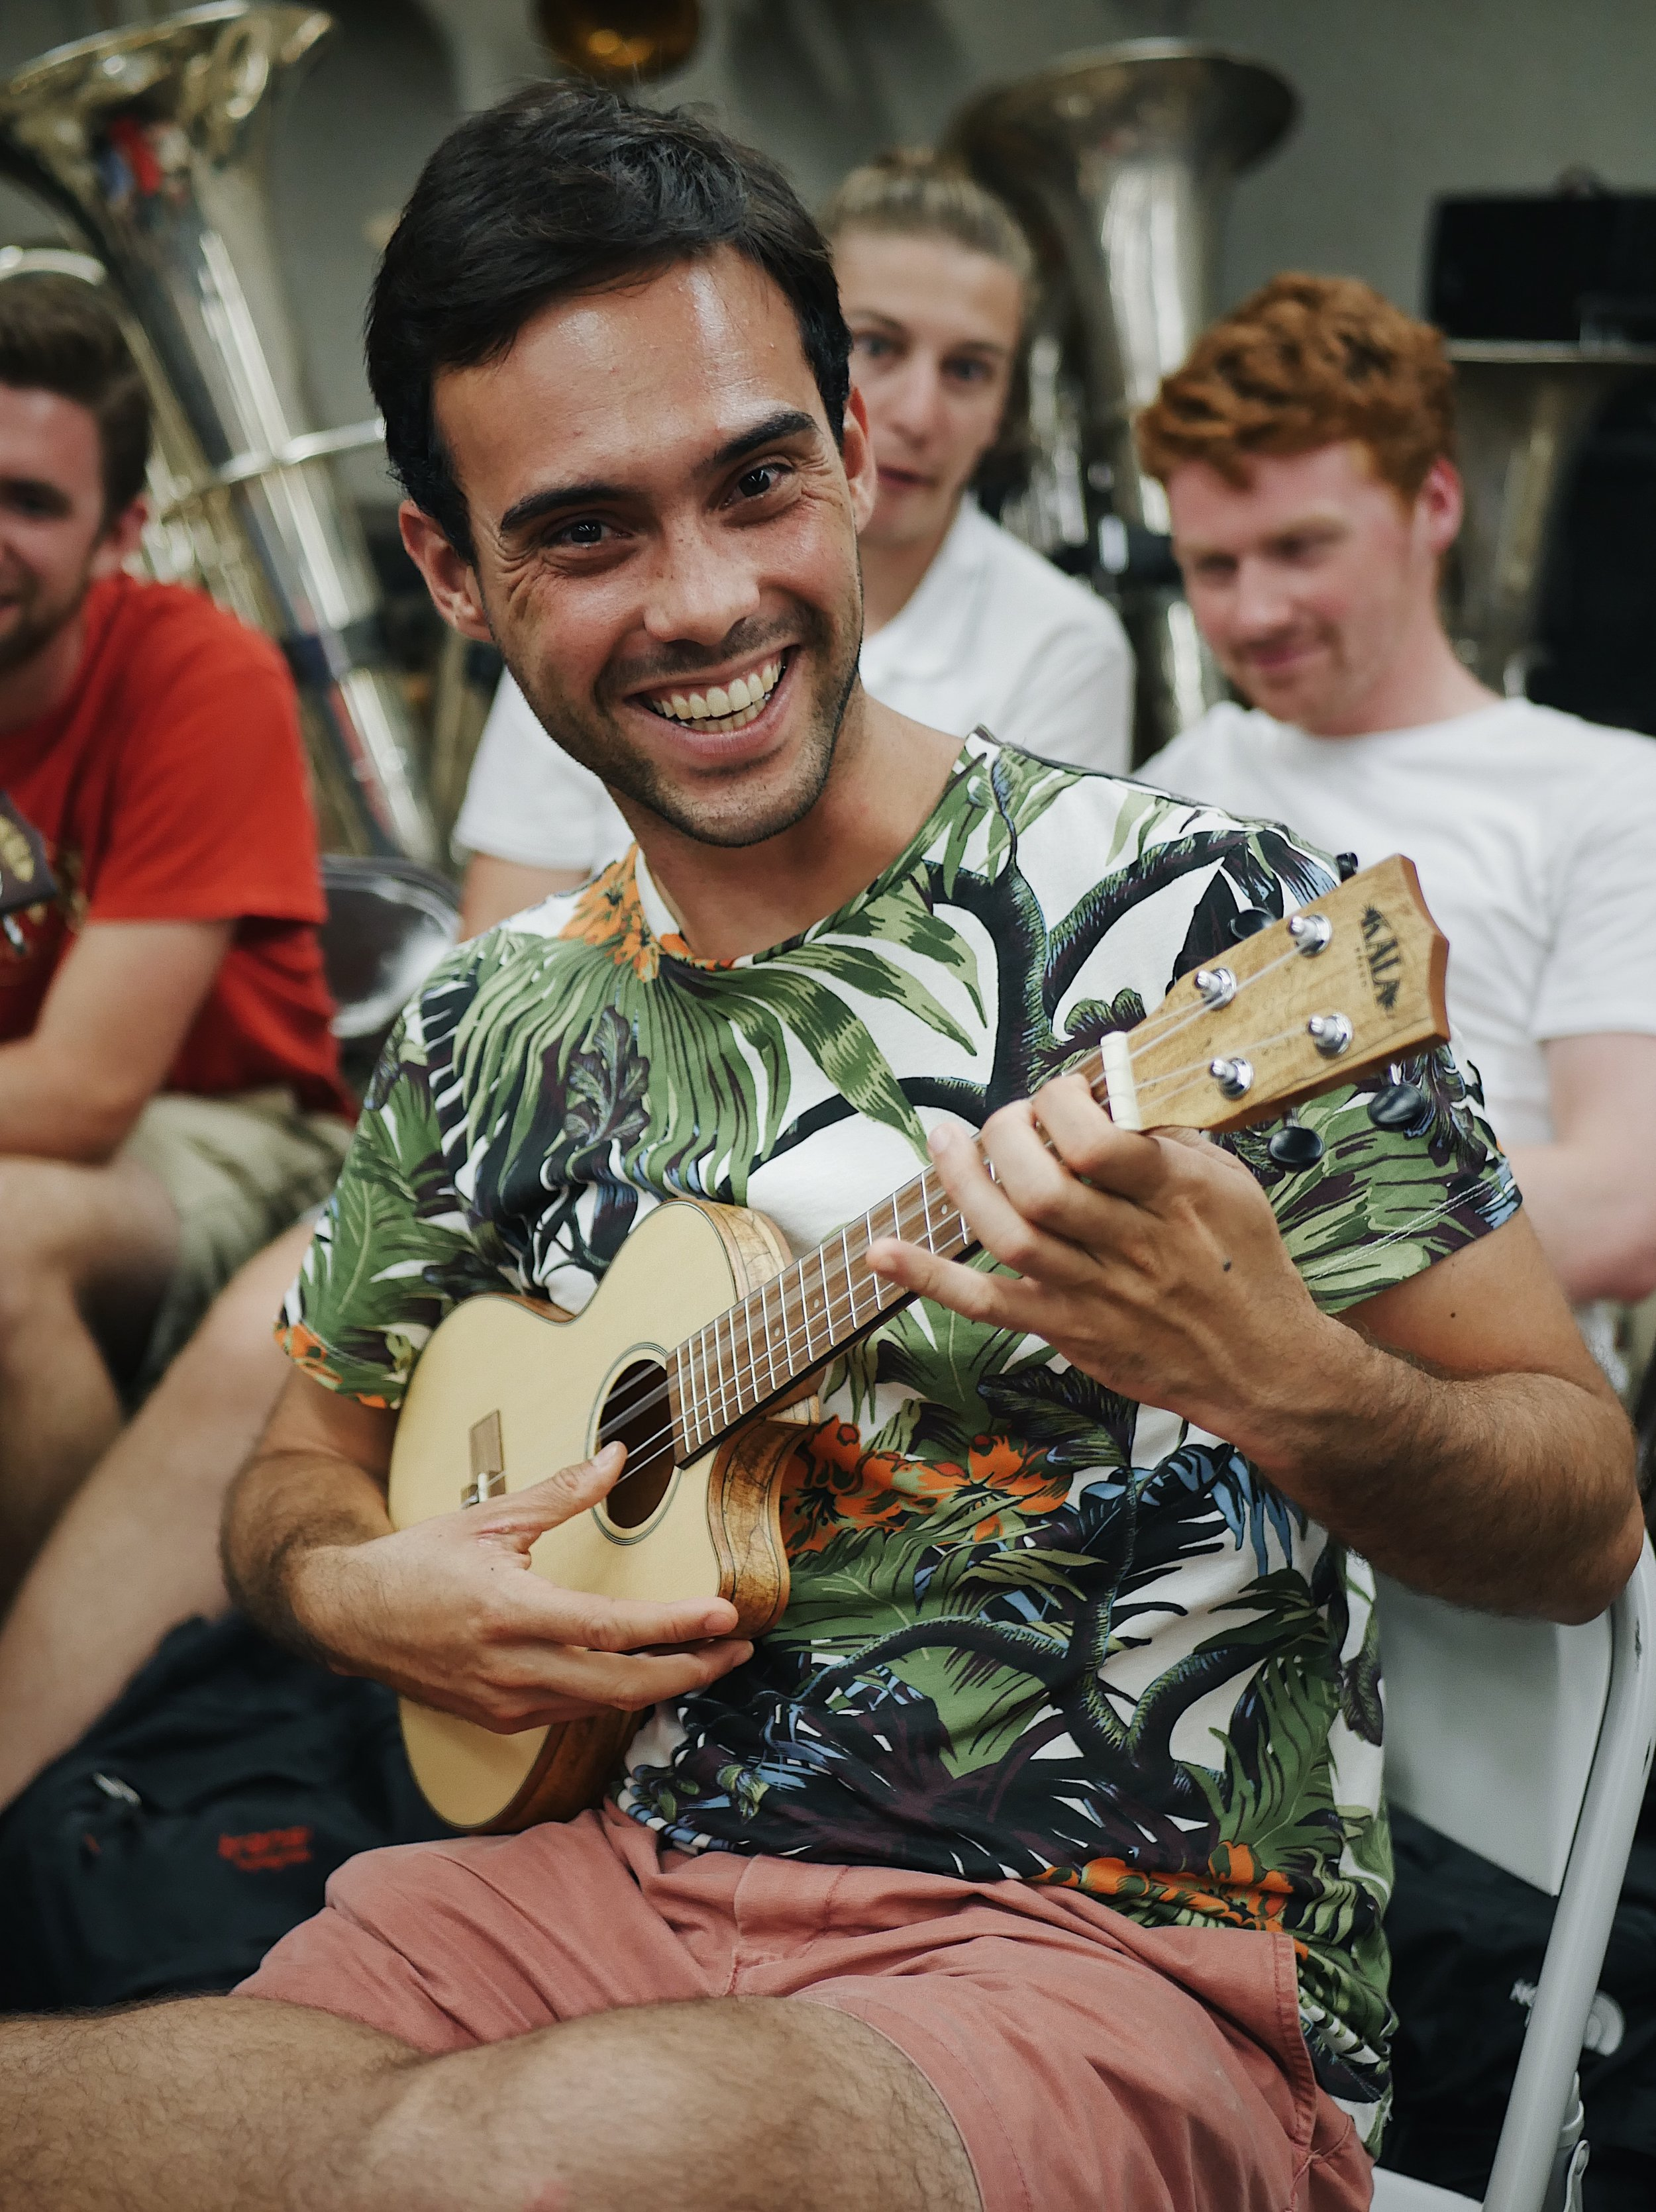 Patrick Braga tests out his 'ukulele skills after a rehearsal with the MCO and Chorus